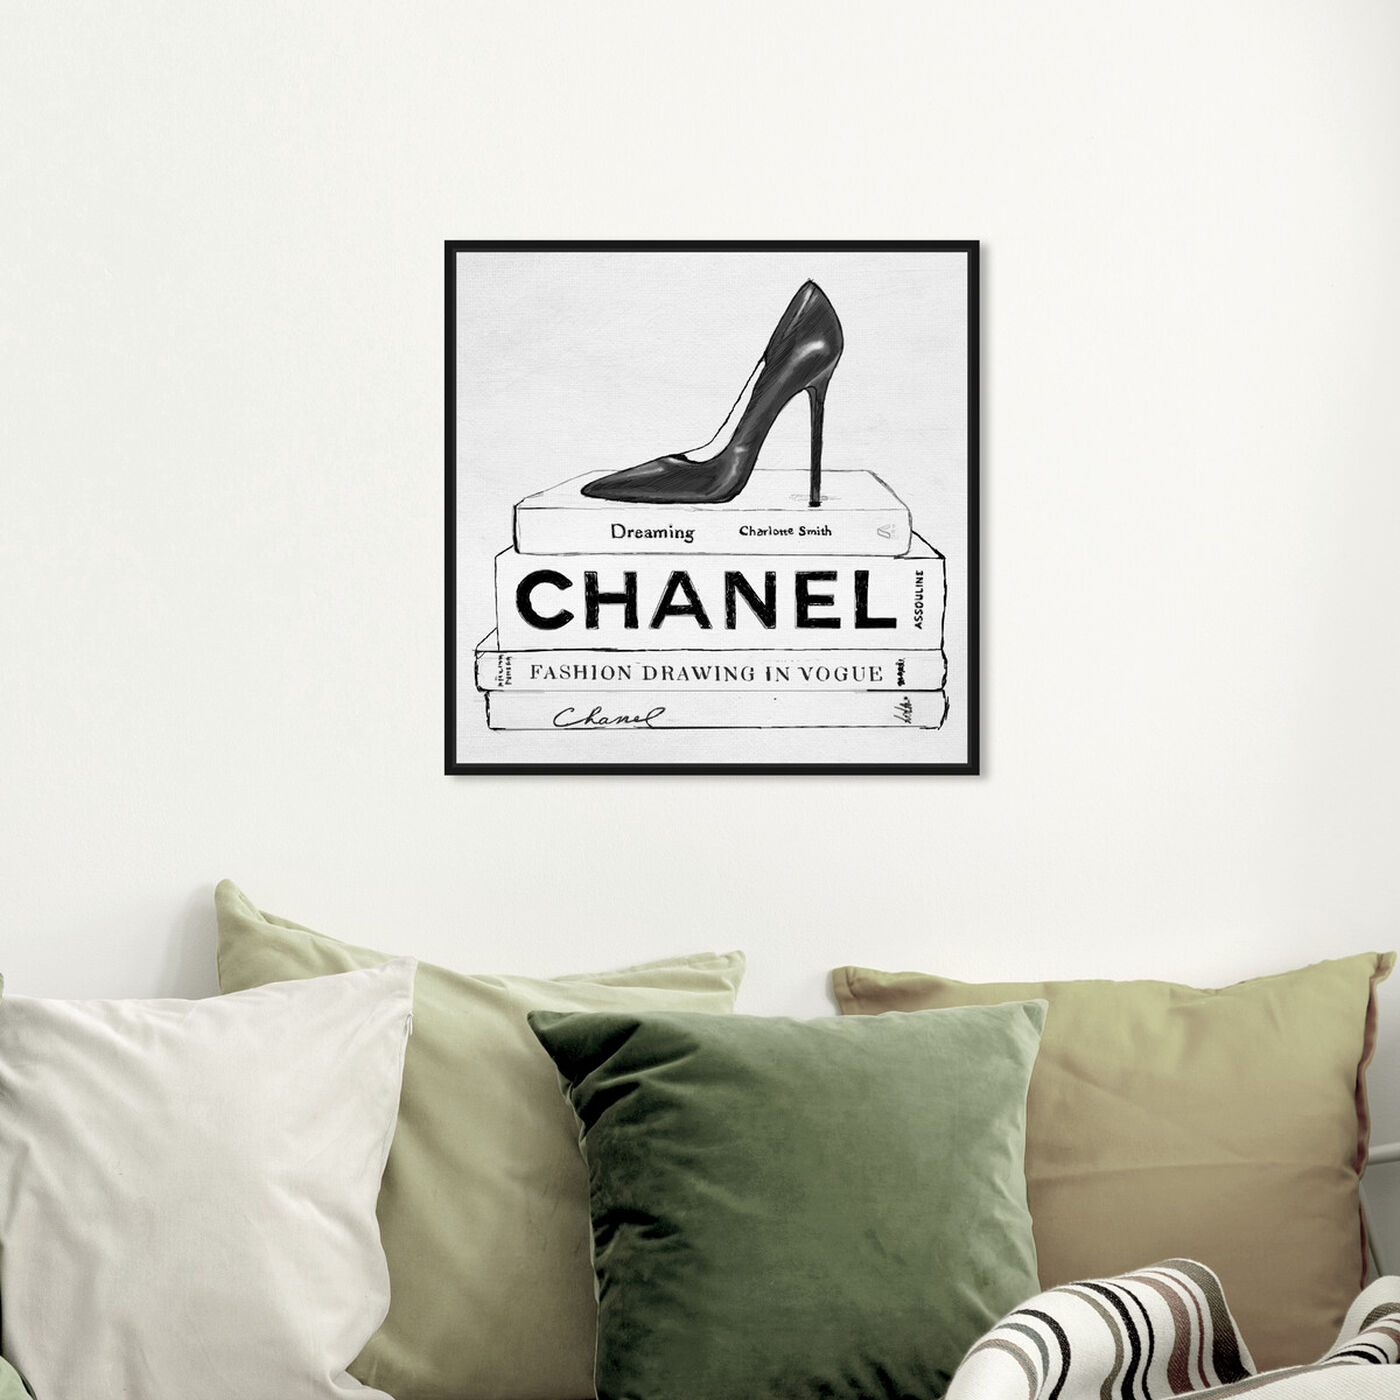 Hanging view of Simplicity in Fashion featuring fashion and glam and shoes art.